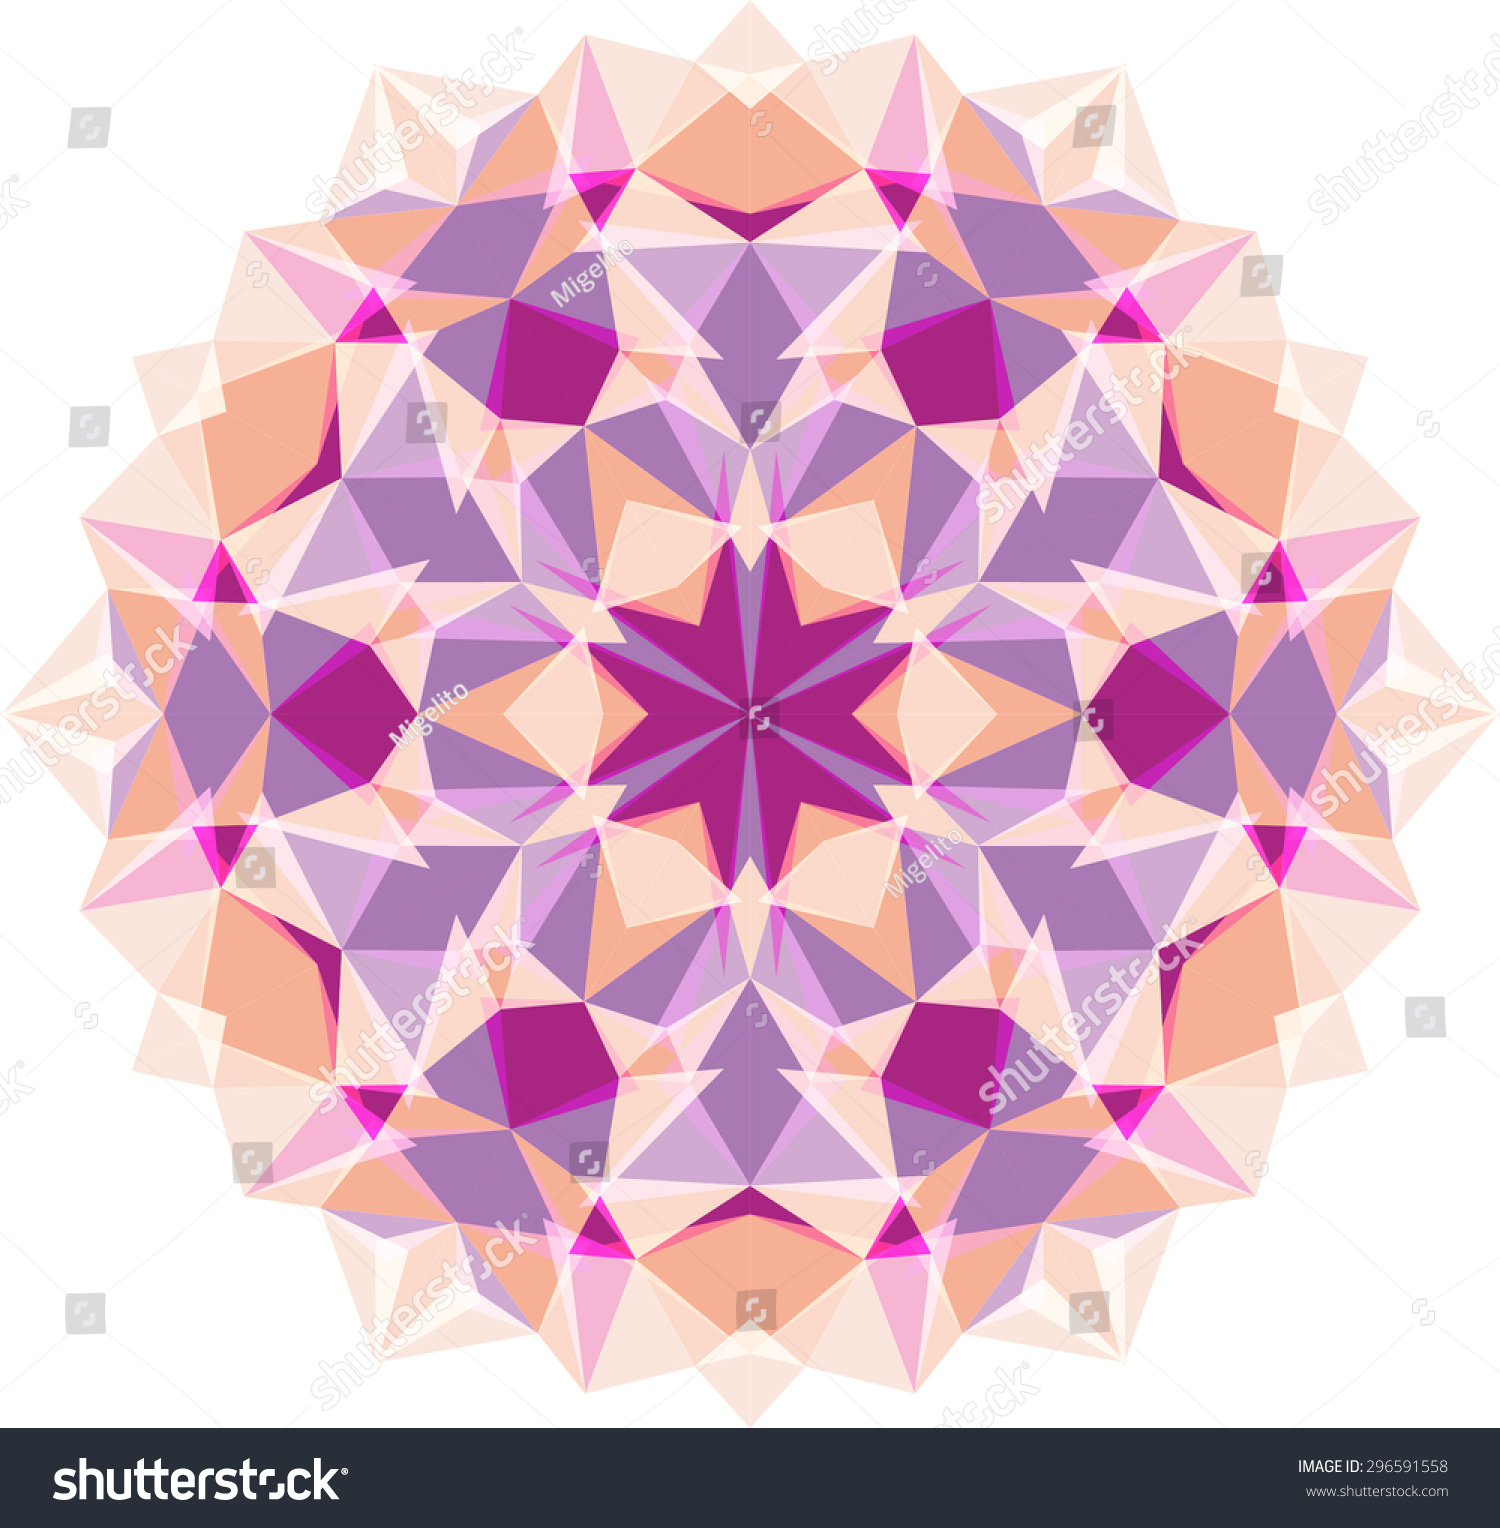 Kaleidoscope flower mandala photo